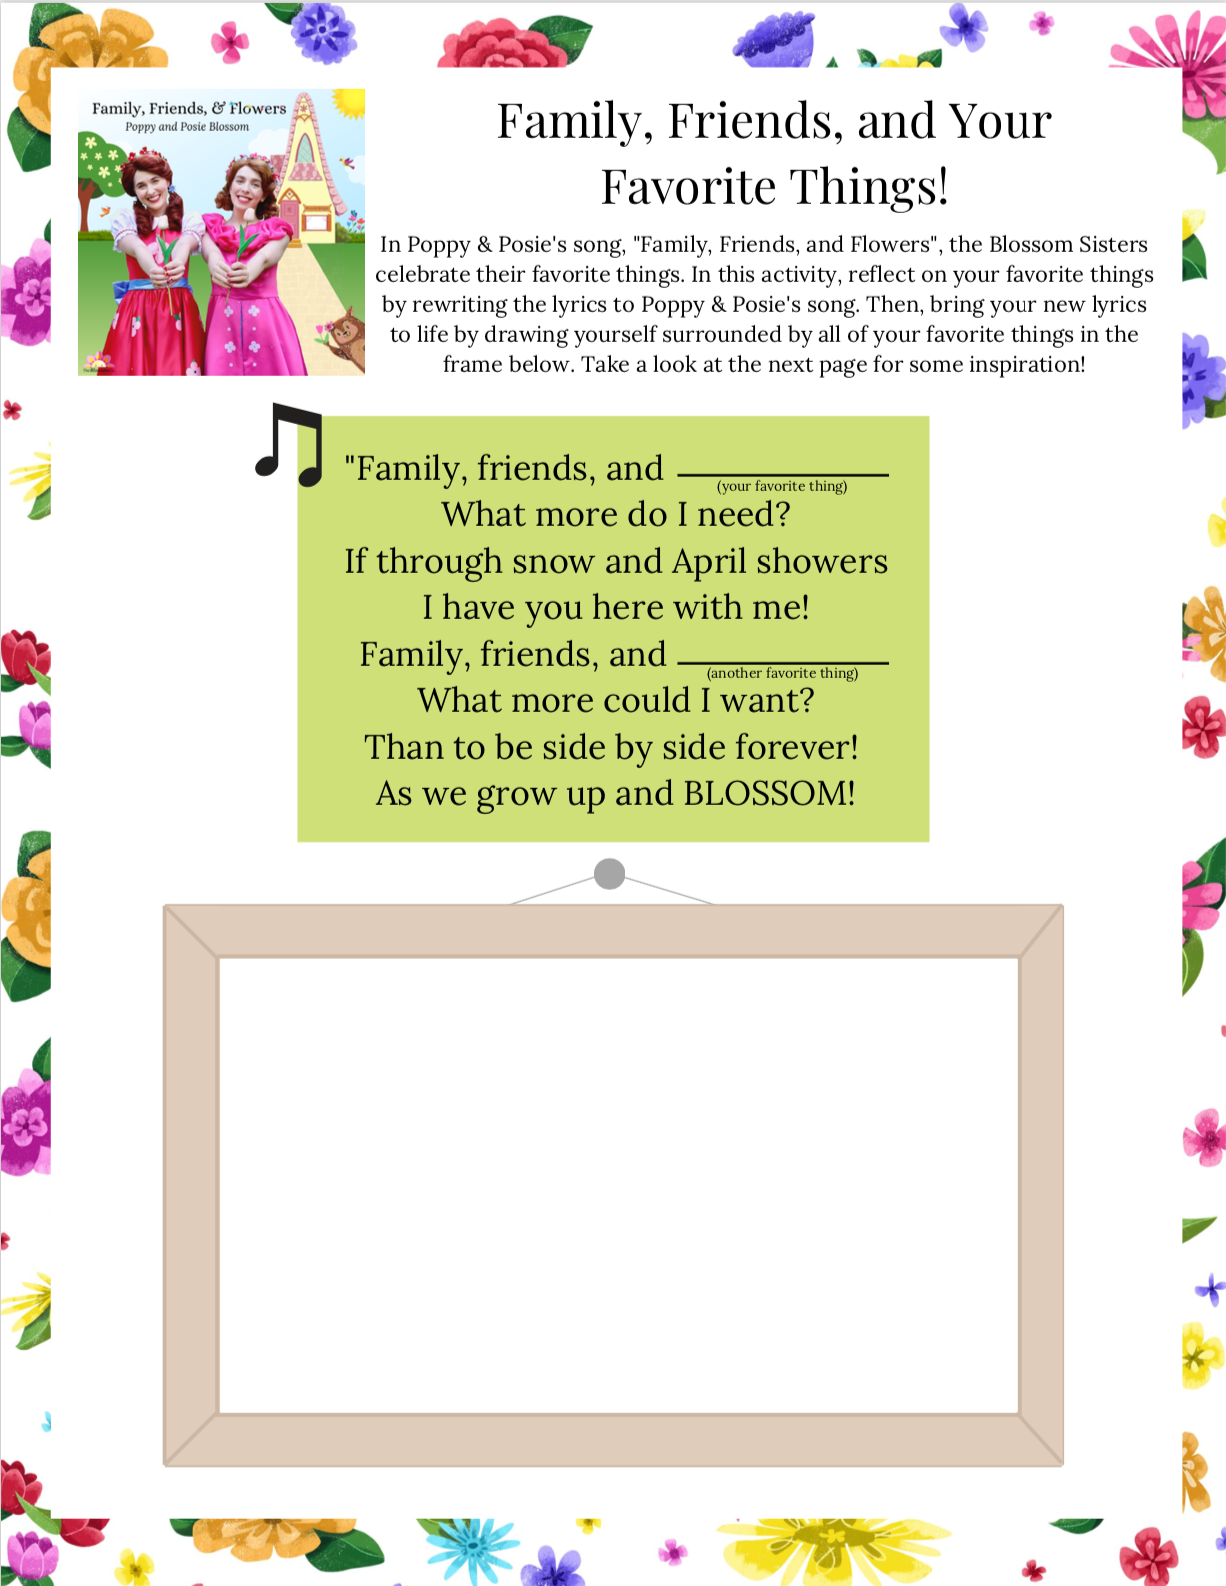 Poppy & Posie's Songwriting Activity - The Blossom Shoppe